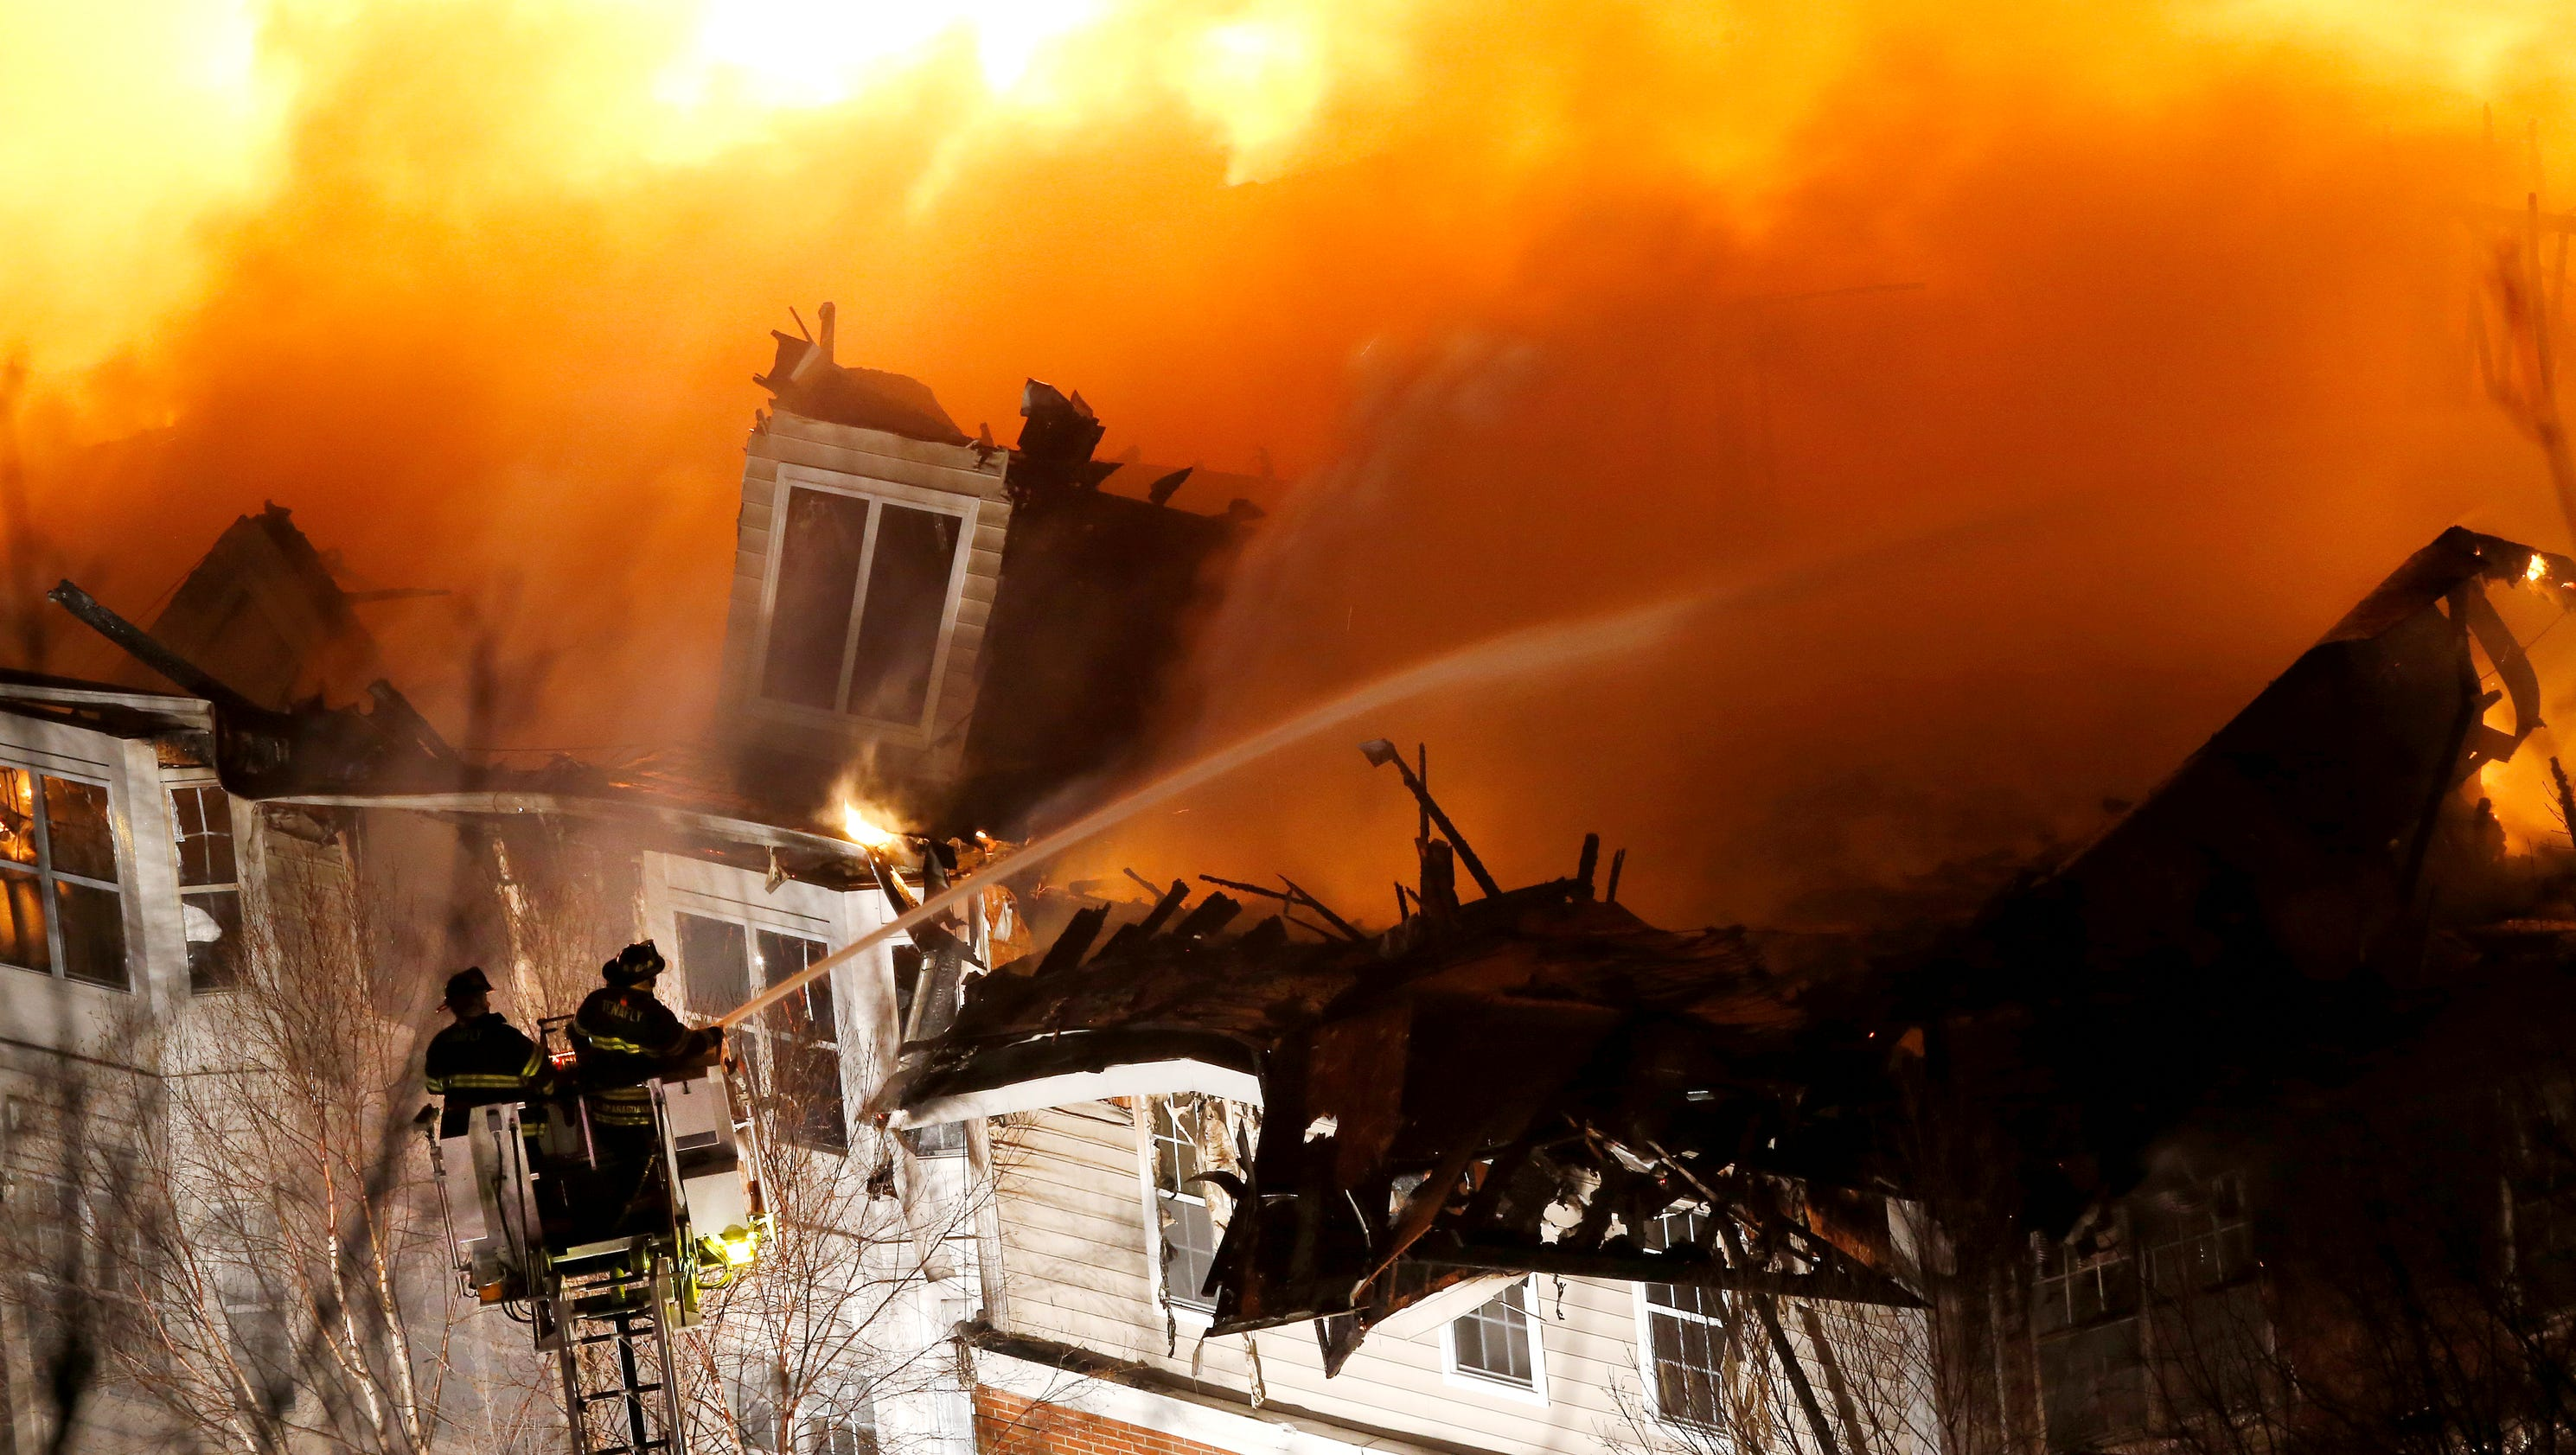 Building On Fire : State of emergency declared after apartment building fire